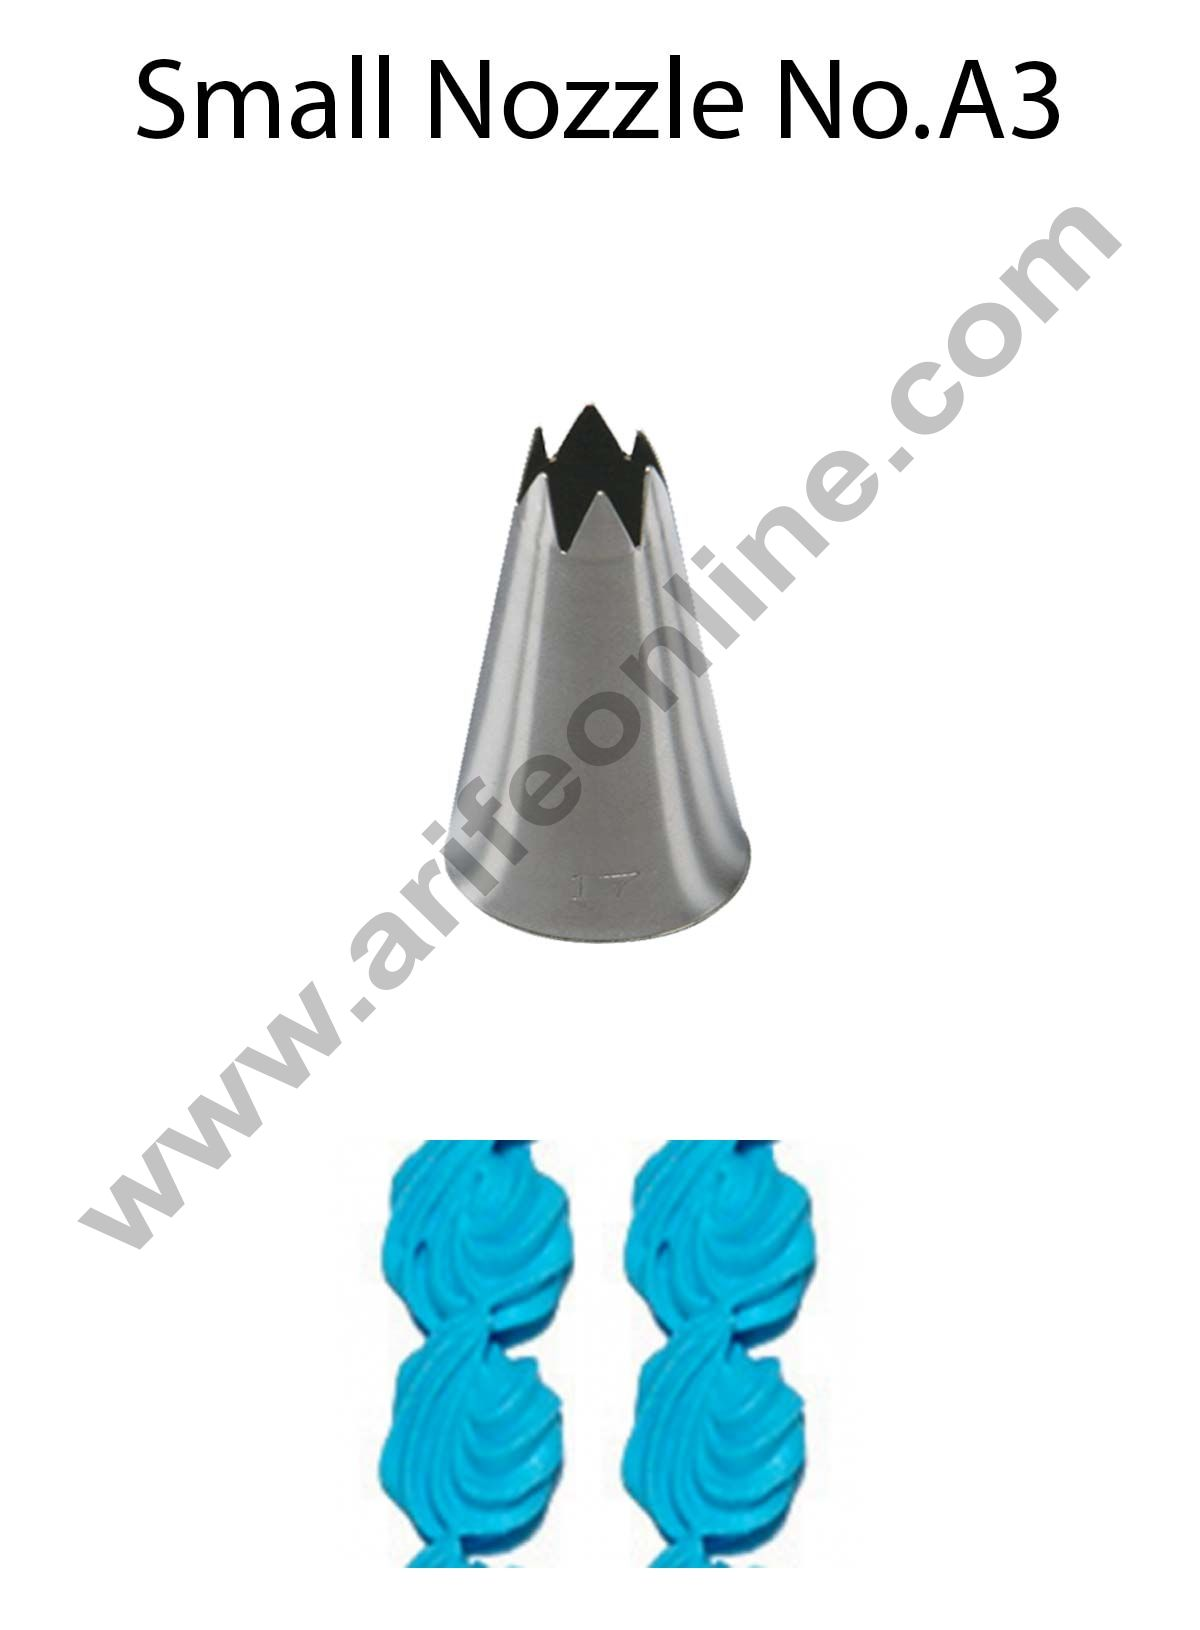 Cake Decor Small Nozzle - No. A3 Open Star Piping Nozzle